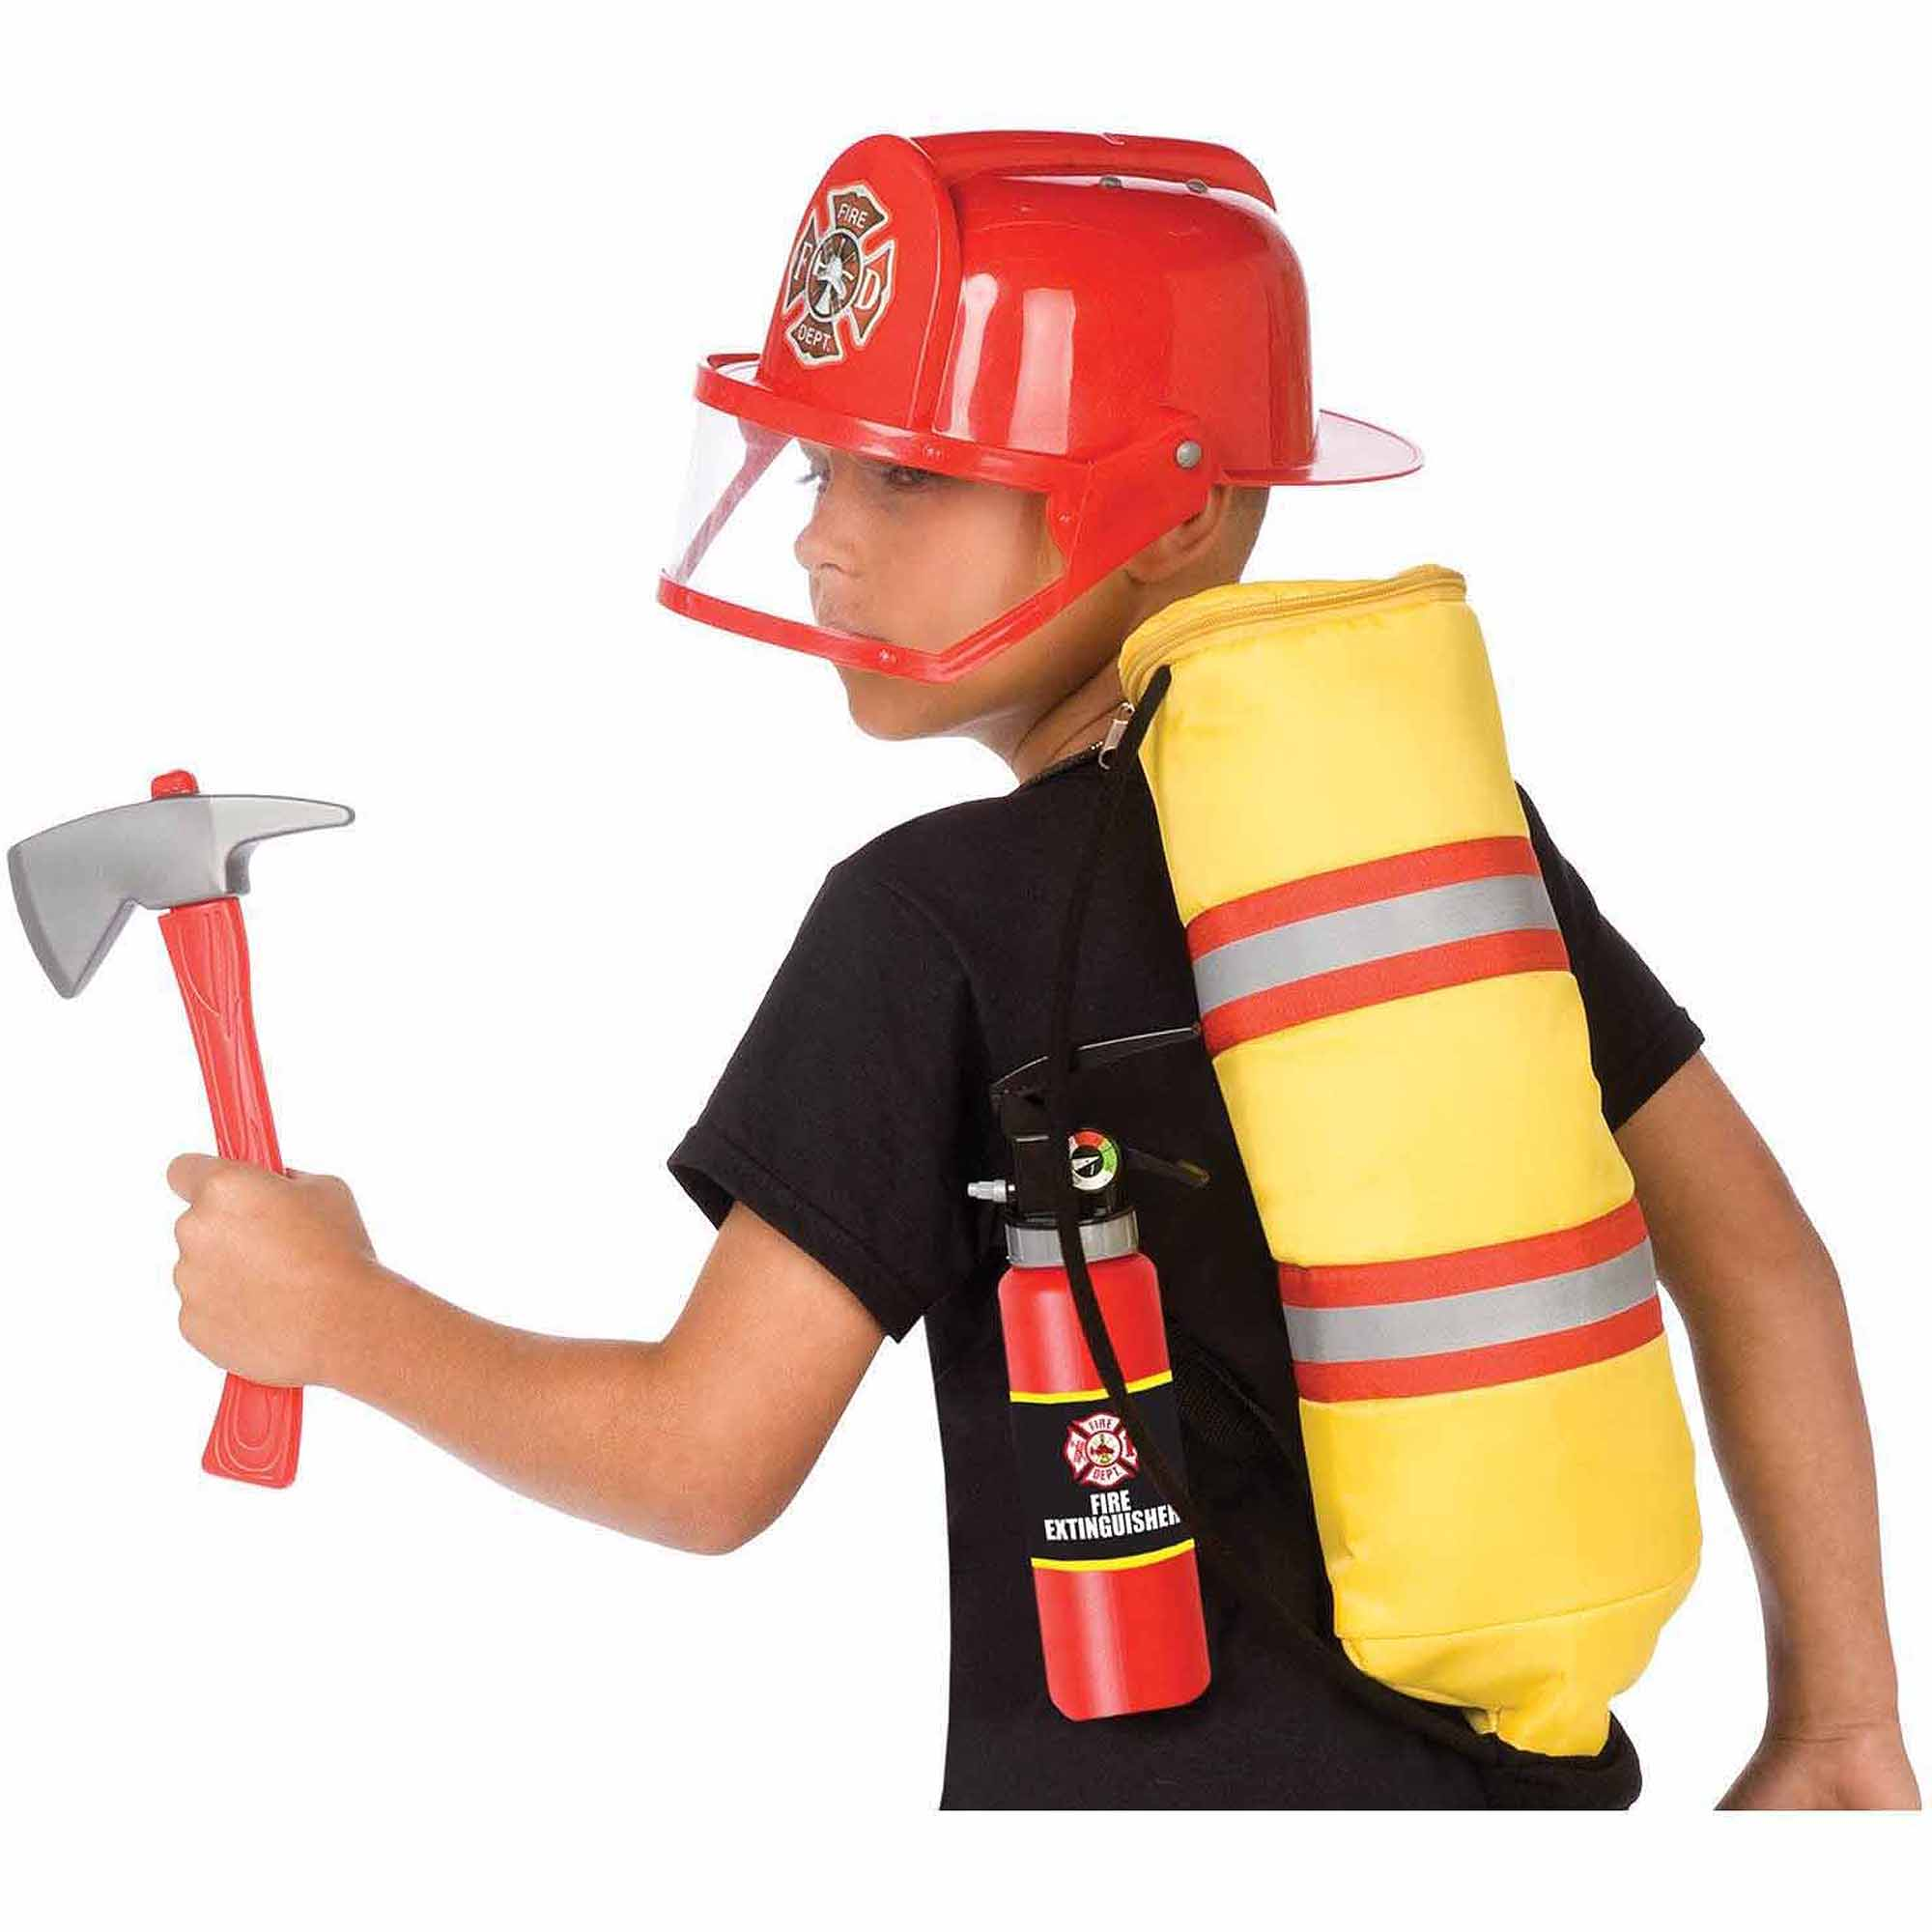 Gear to Go Fireman Adventure Play Set Halloween Costume Accessory